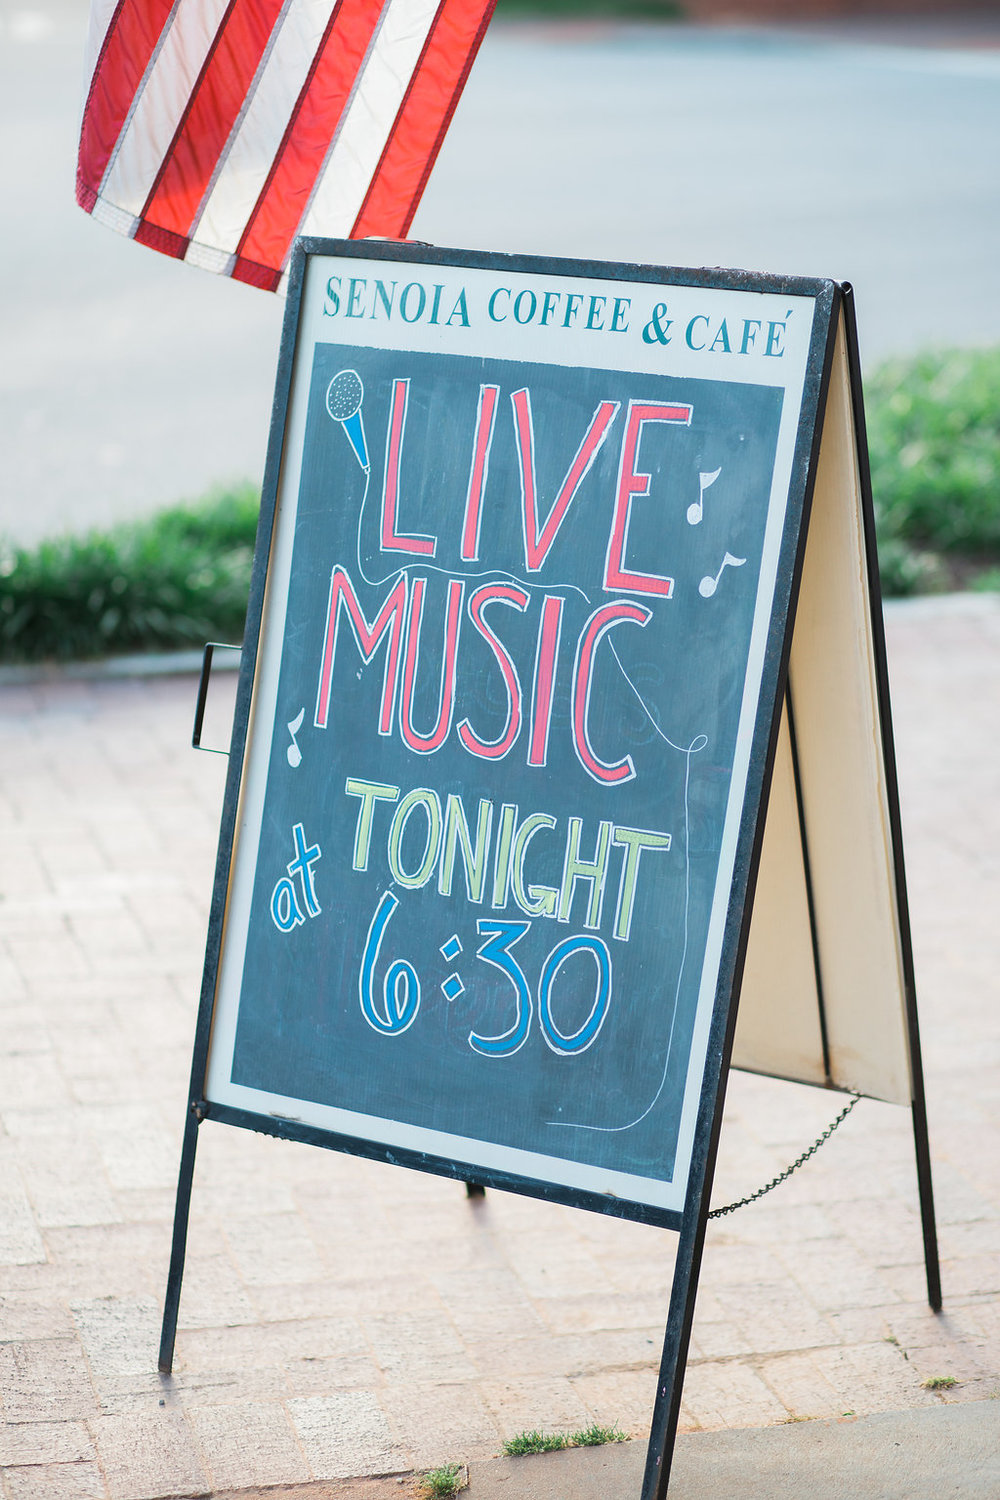 Senoia-Coffee-Cafe-Live-Music-NSP-018.JPG